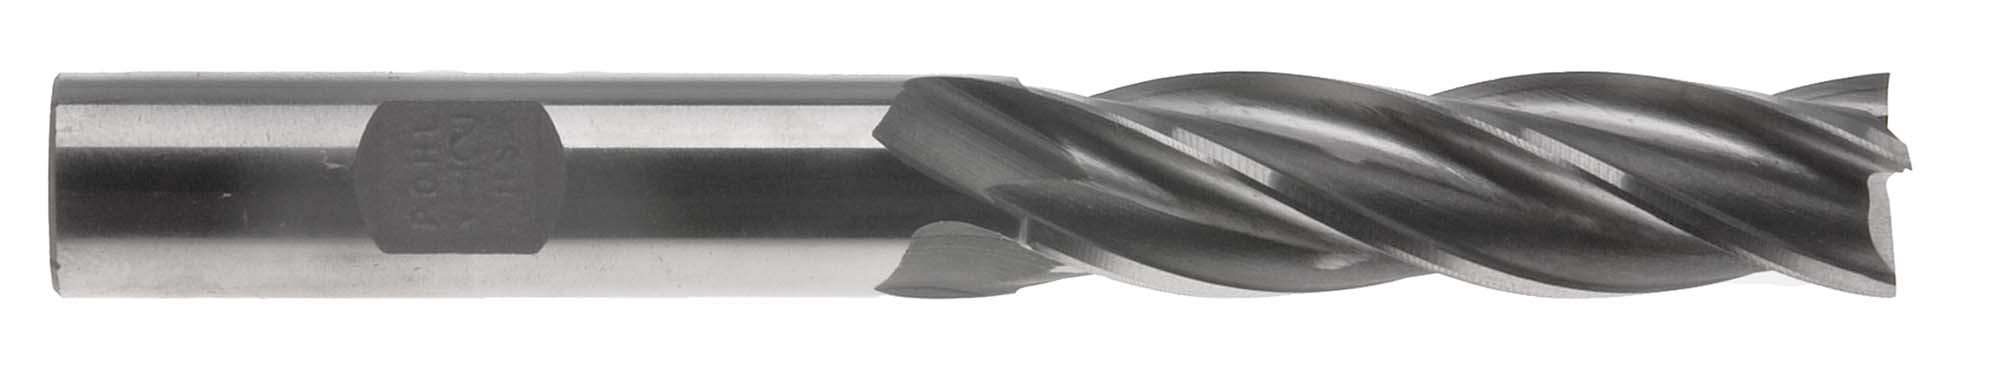 "EM-FL48X  1-1/2"" 6 Flute Long End Mill - 1"" Shank, High Speed Steel"